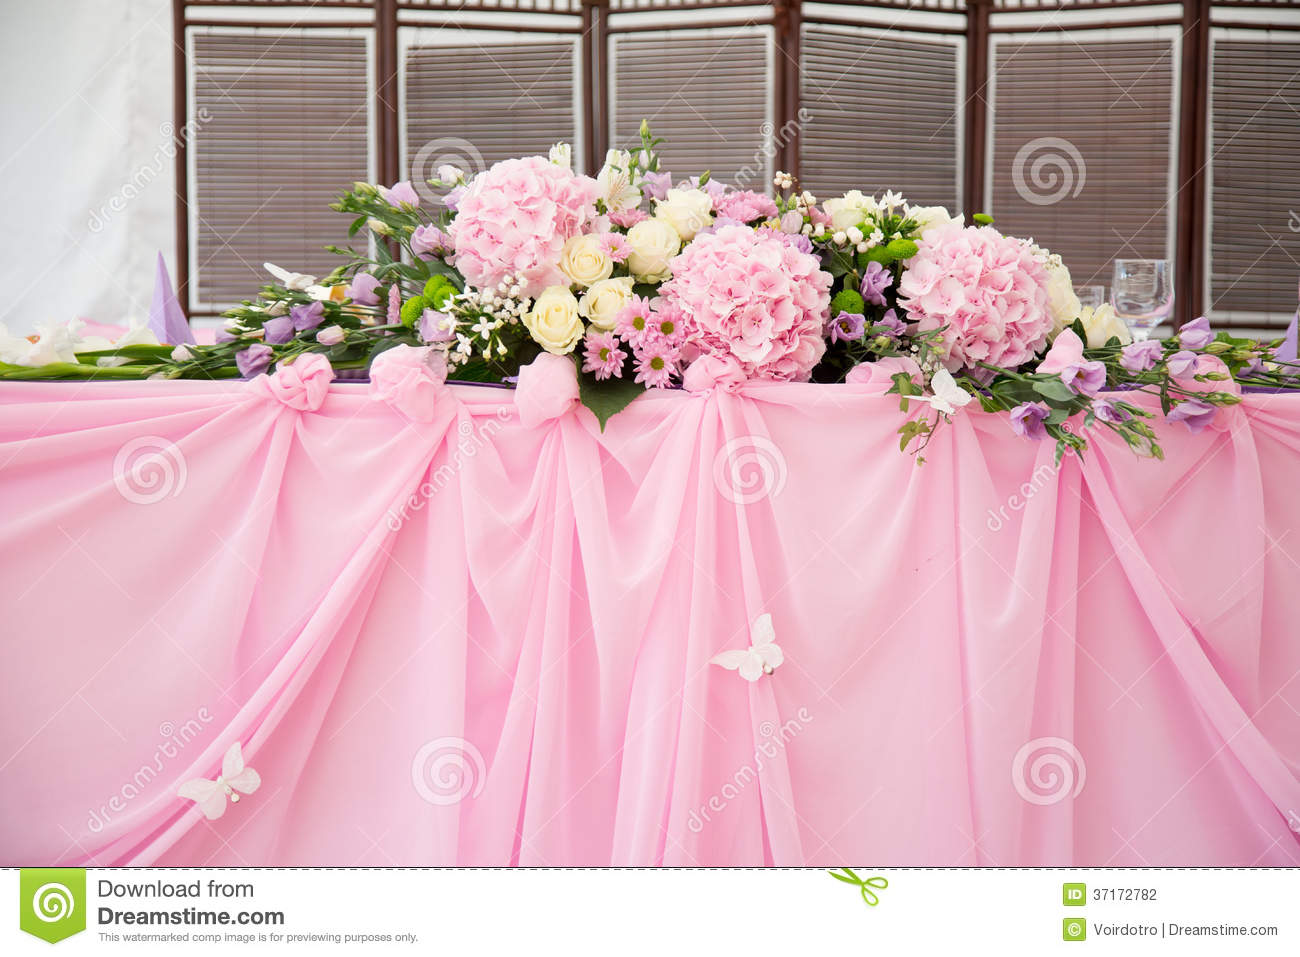 Pink Wedding Bridal Table Decorations Stock Photo - Image of creases ...